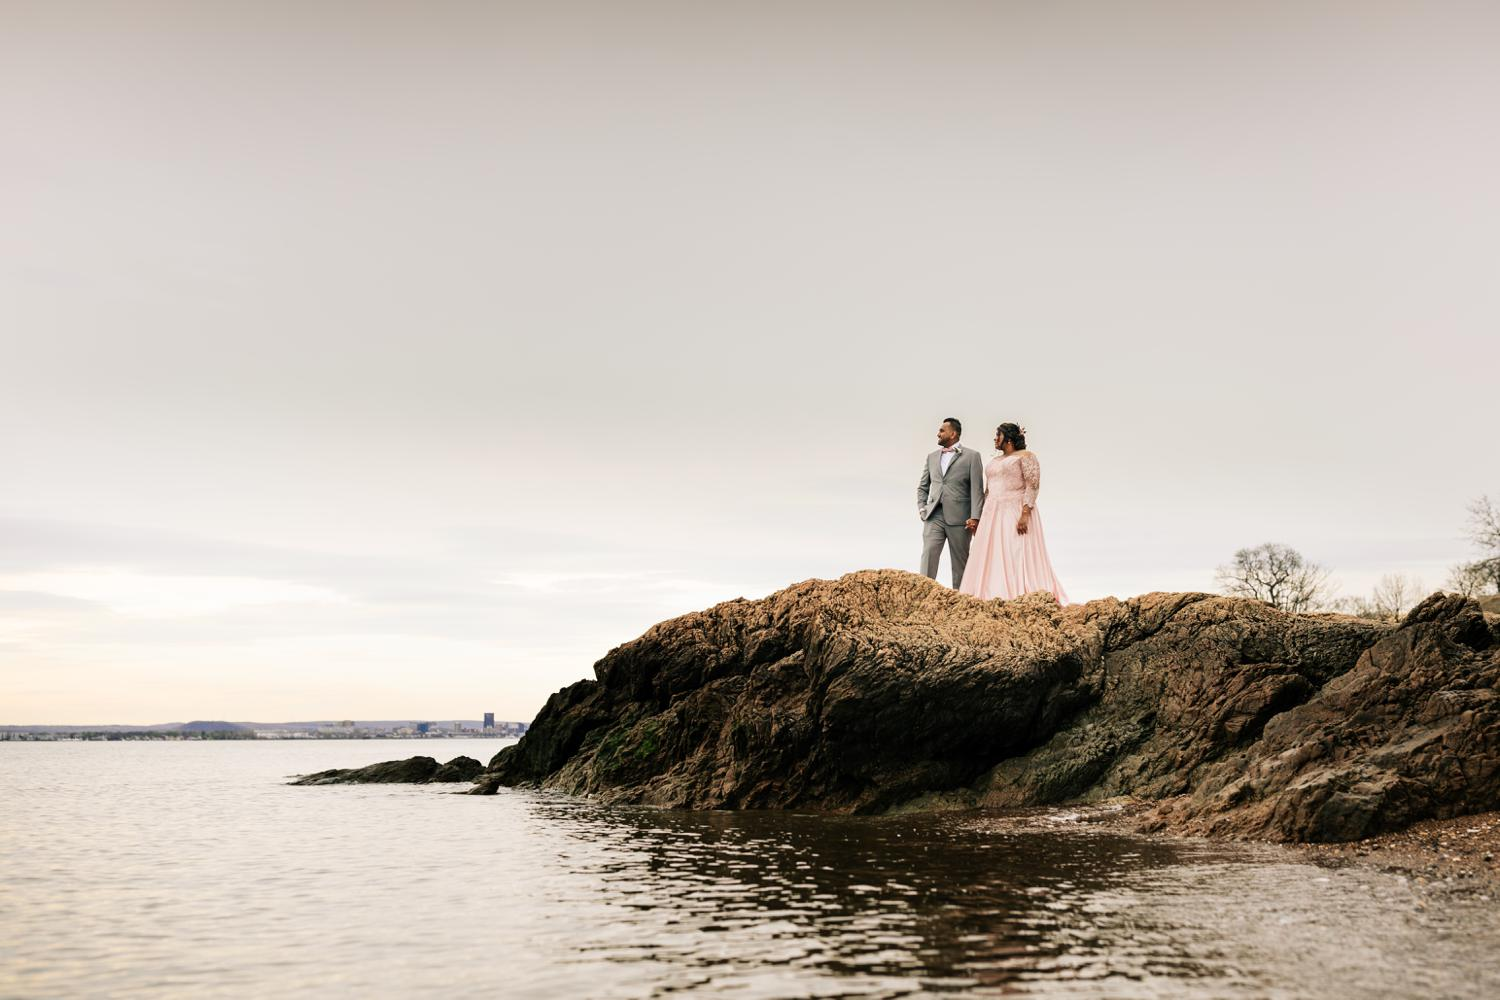 12. natural-wedding-photographer-boston-northeast-andrea-van-orsouw-photography-adventurous-southwest-fun3.jpg